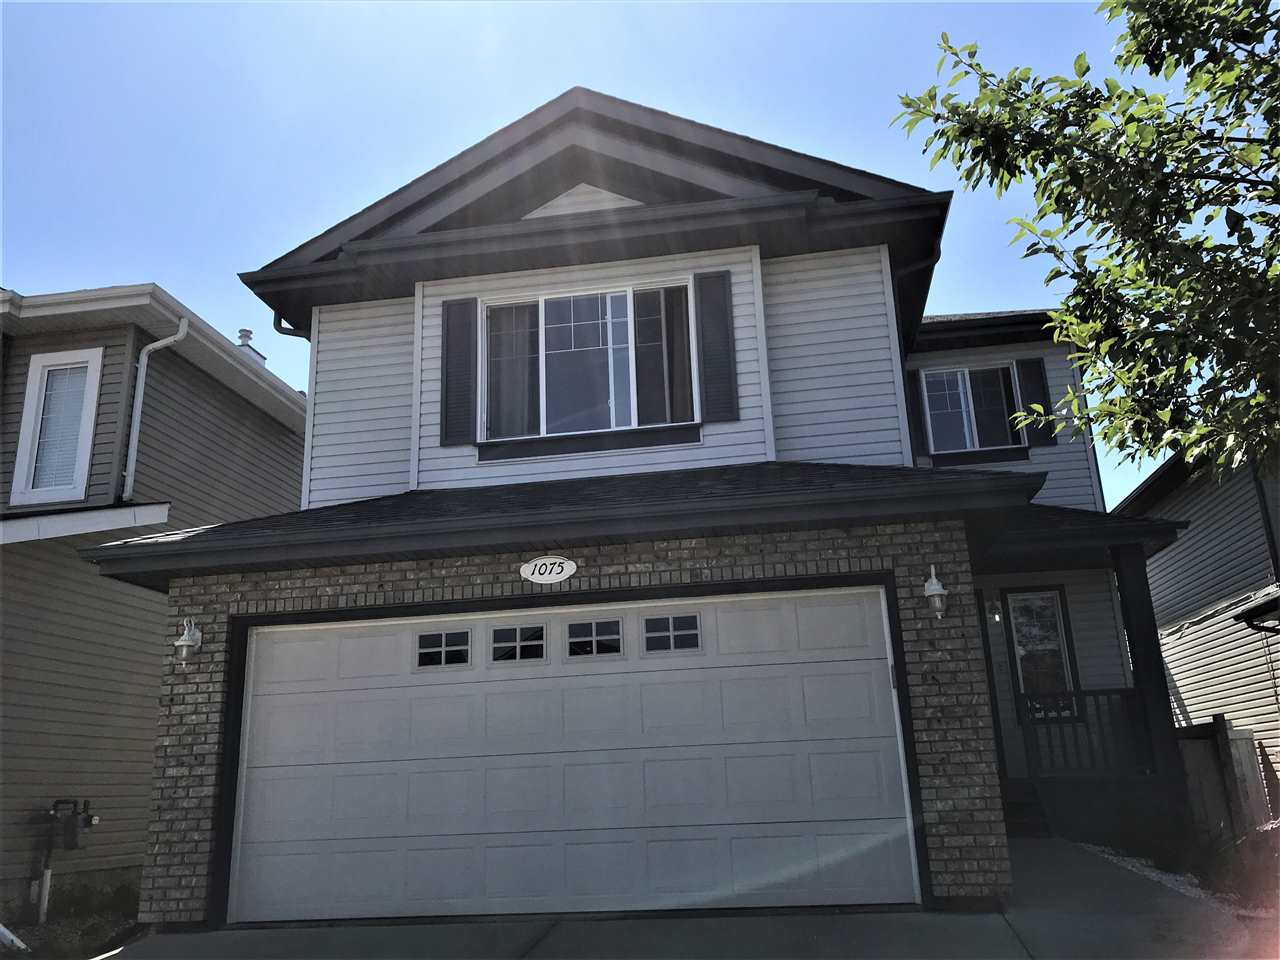 MLS® listing #E4167107 for sale located at 1075 LEGER Boulevard